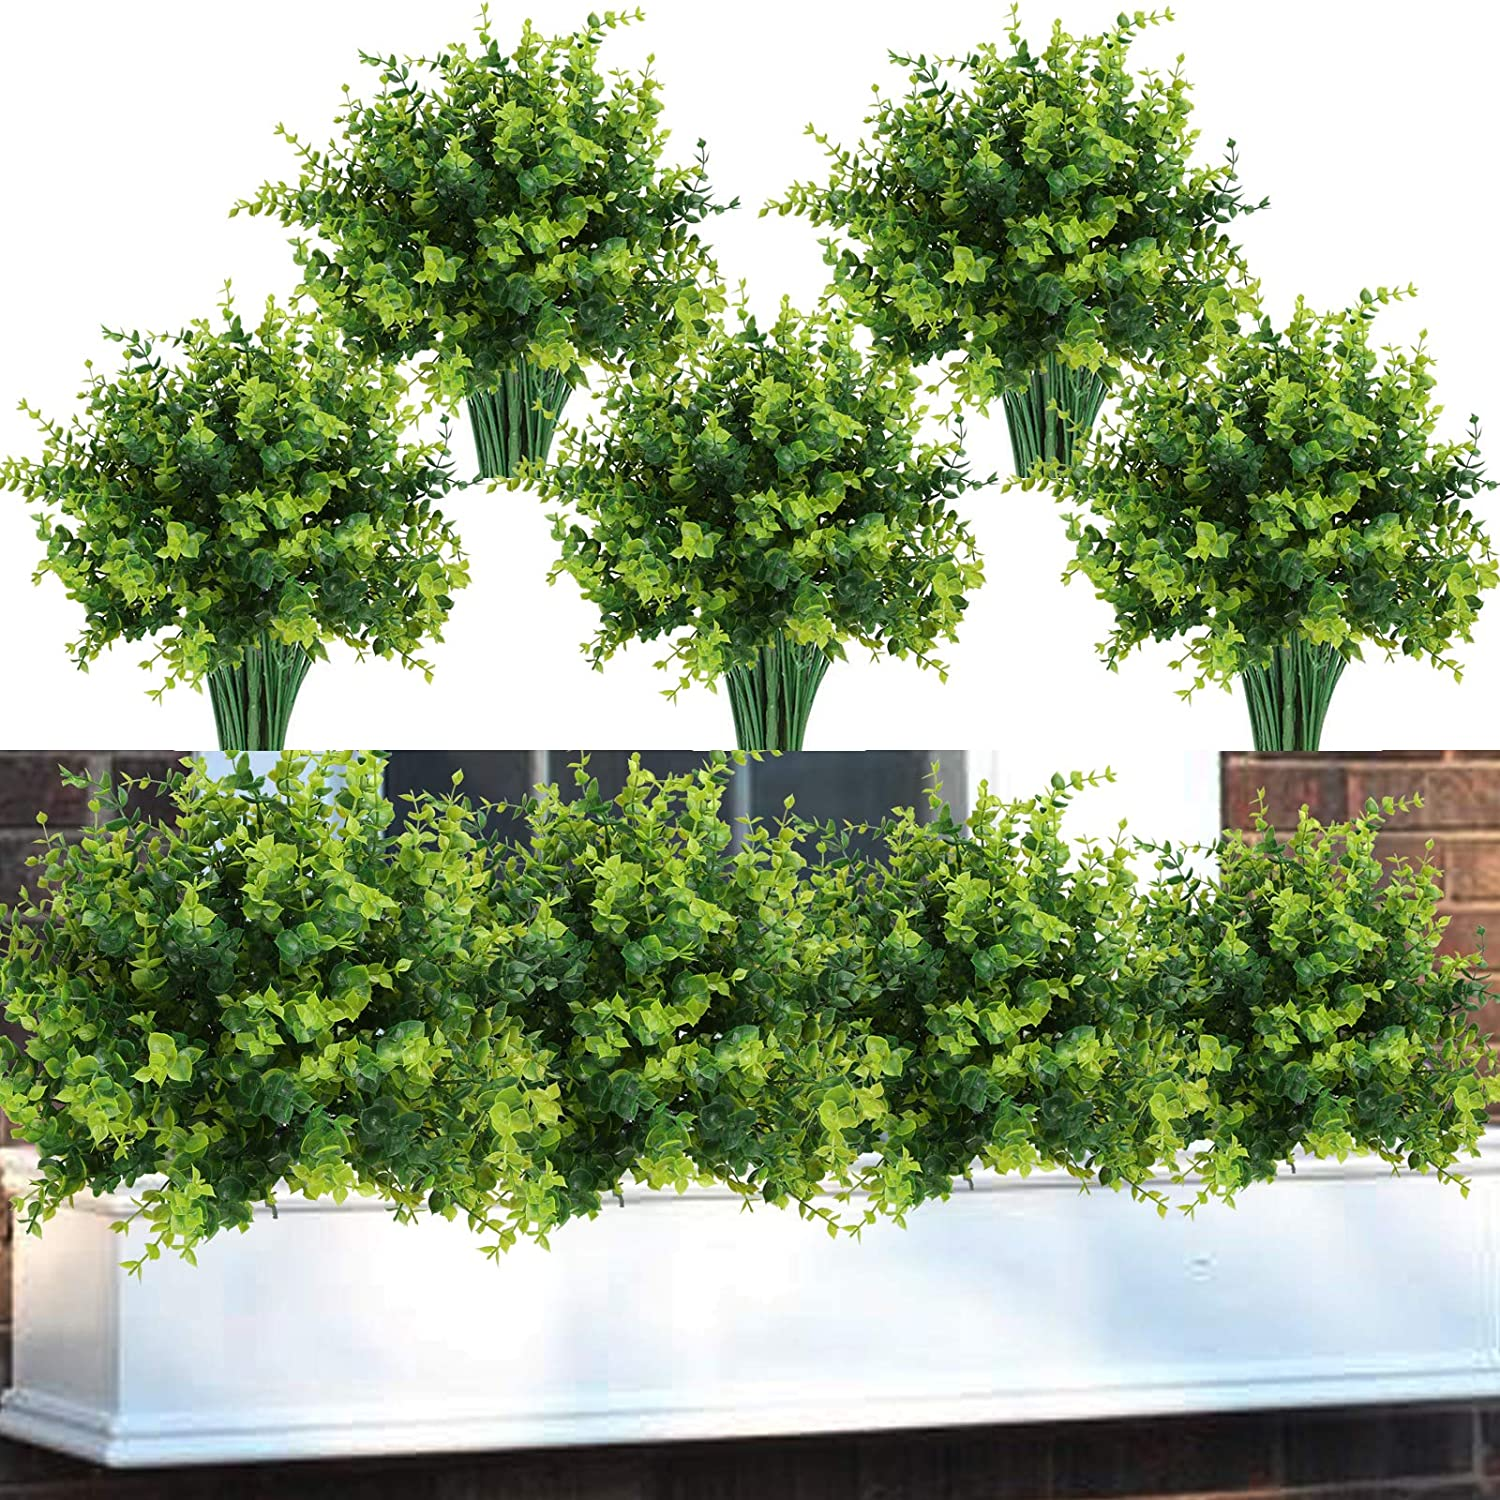 Summer Flower 9 pack Mums Artificial Boxwood Plants For Outdoors,Plastic UV Resistant Faux Flowers Stems,Fake Plants Foliage Shrubs Greenery for Garden,Office,Patio,Wedding,Farmhouse Indoor Decoration